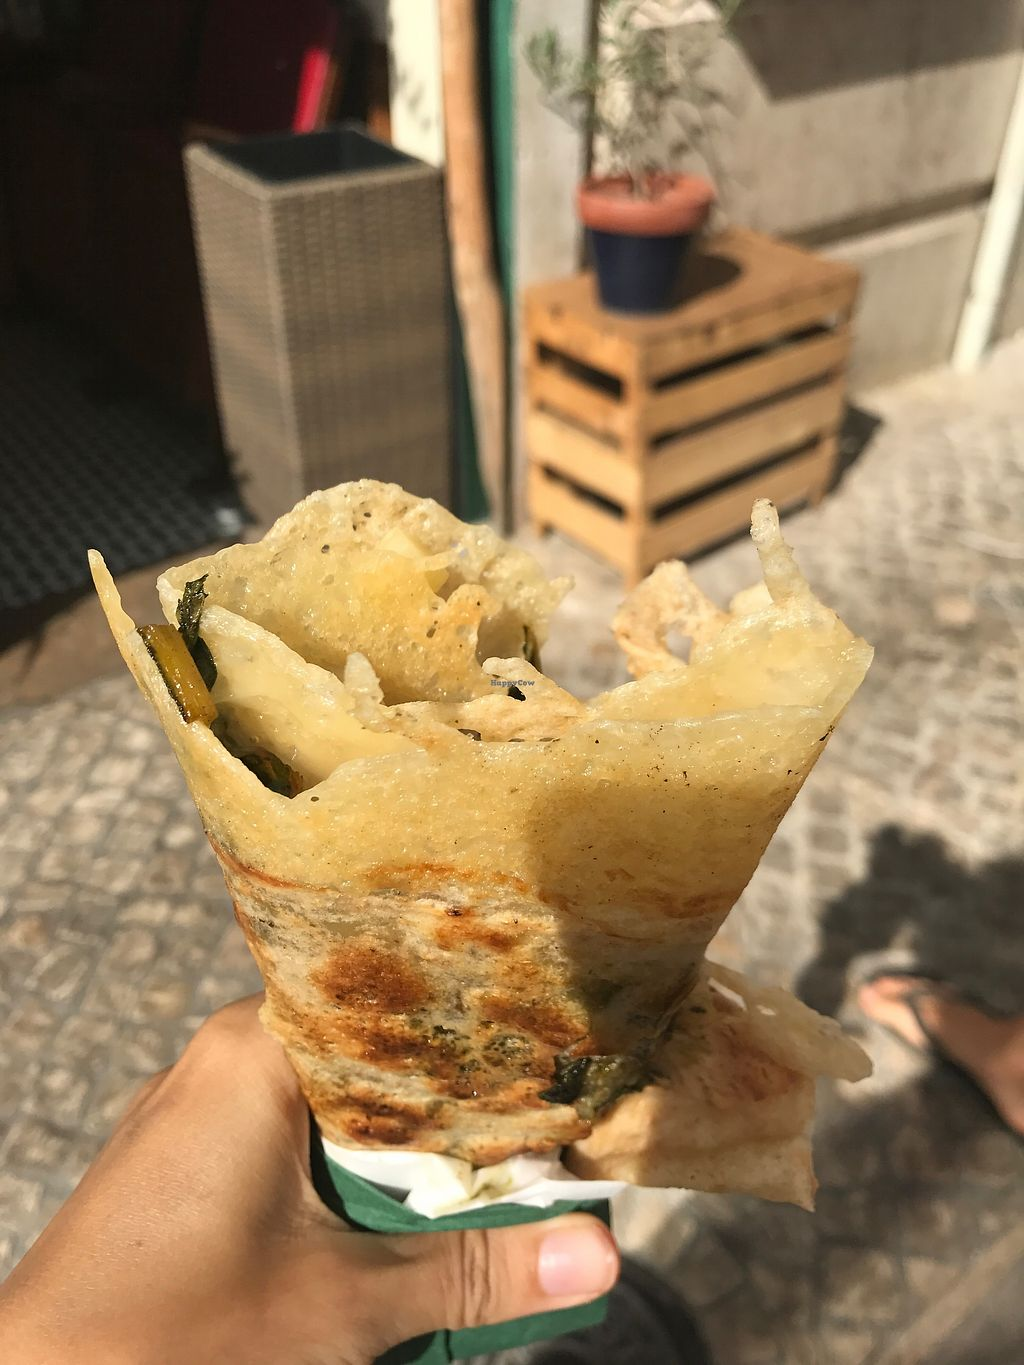 """Photo of Sama Sama - Crepe and Juice Bar  by <a href=""""/members/profile/TineH"""">TineH</a> <br/>Yummy Mick Crepe <br/> September 25, 2017  - <a href='/contact/abuse/image/93689/308473'>Report</a>"""